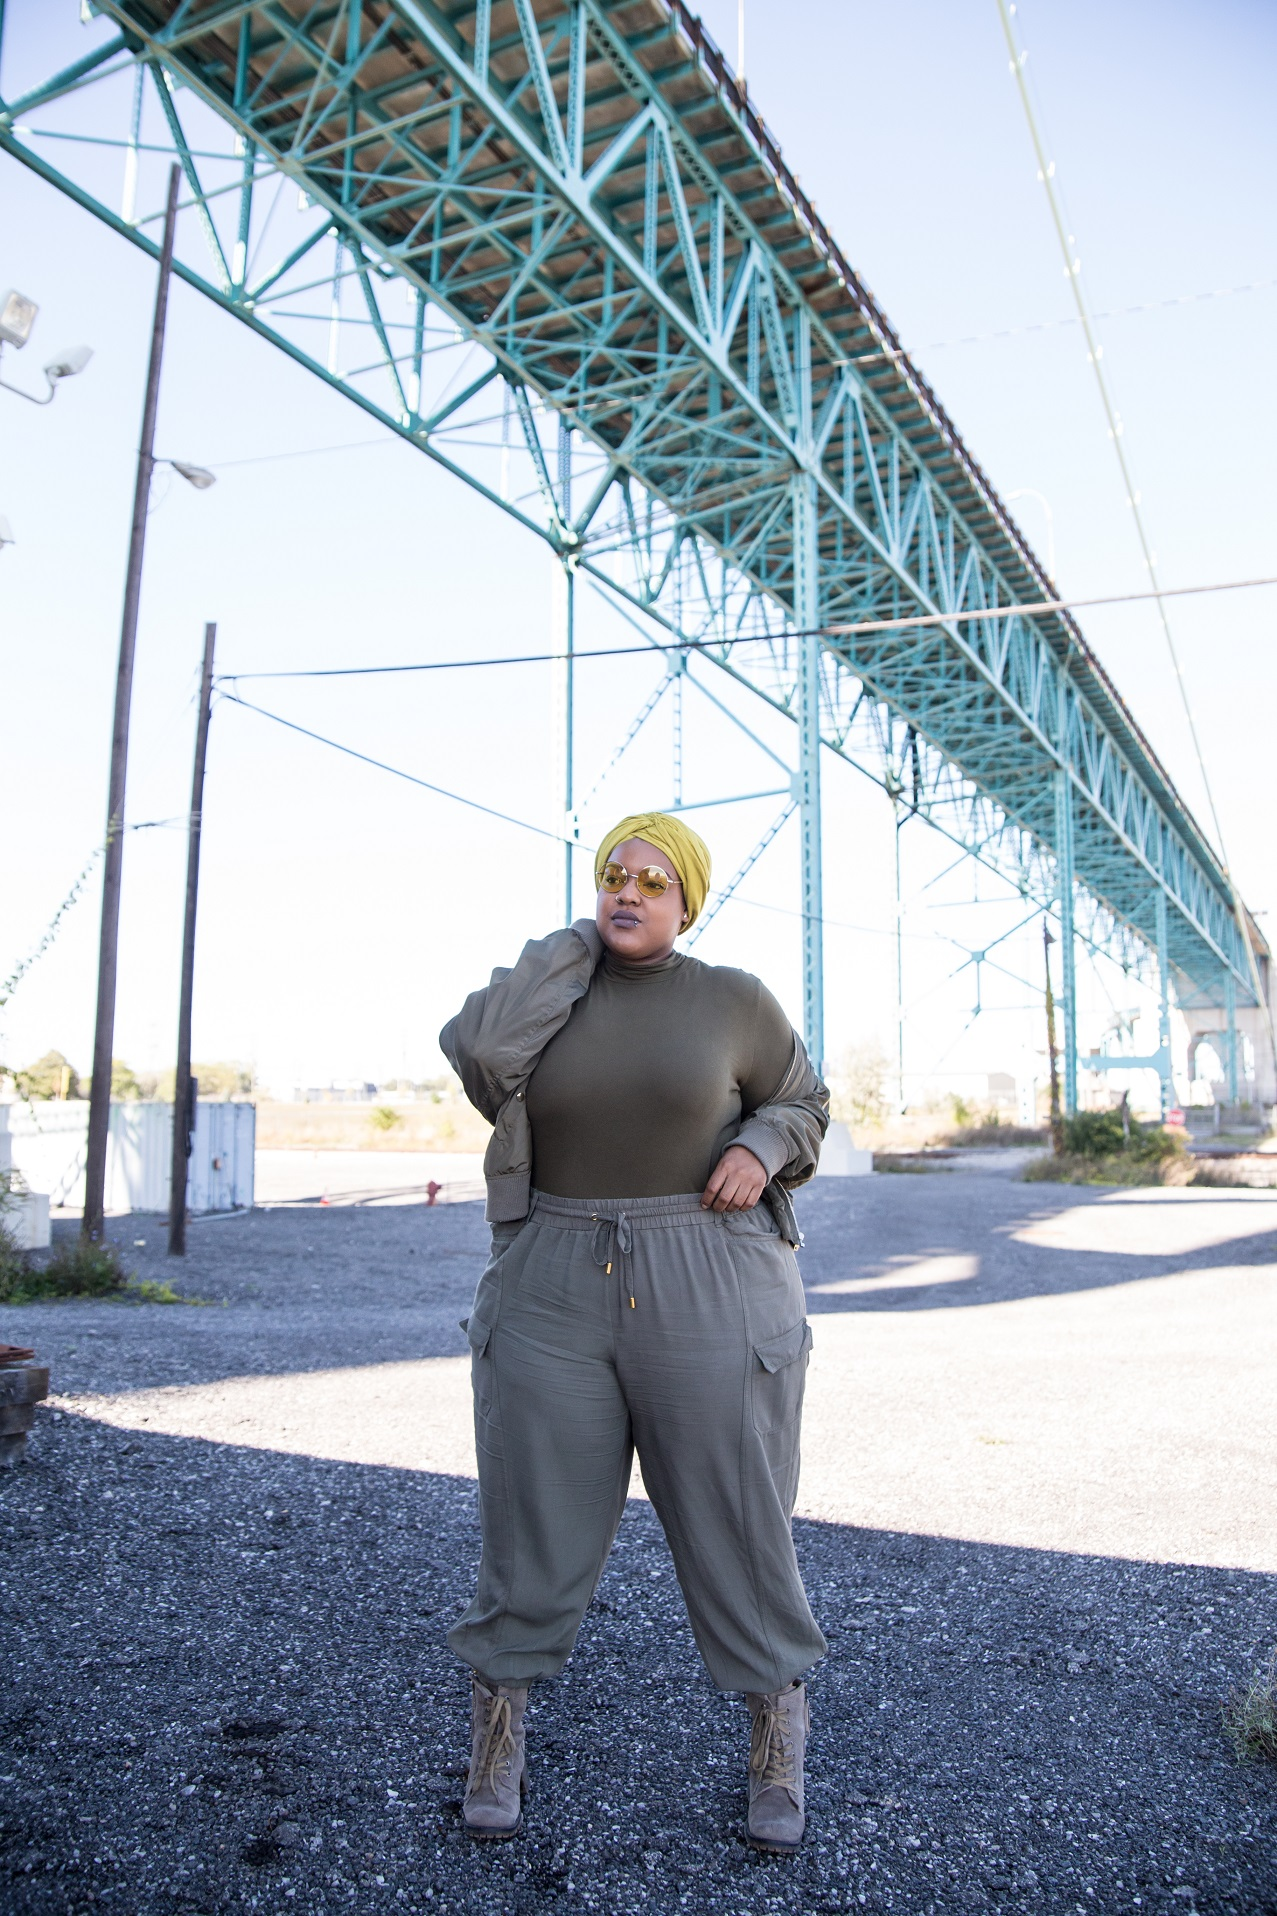 Leah-Vernon-Muslim-Girl-Plus-Size-Model-Body-Positive-Detroit.jpg